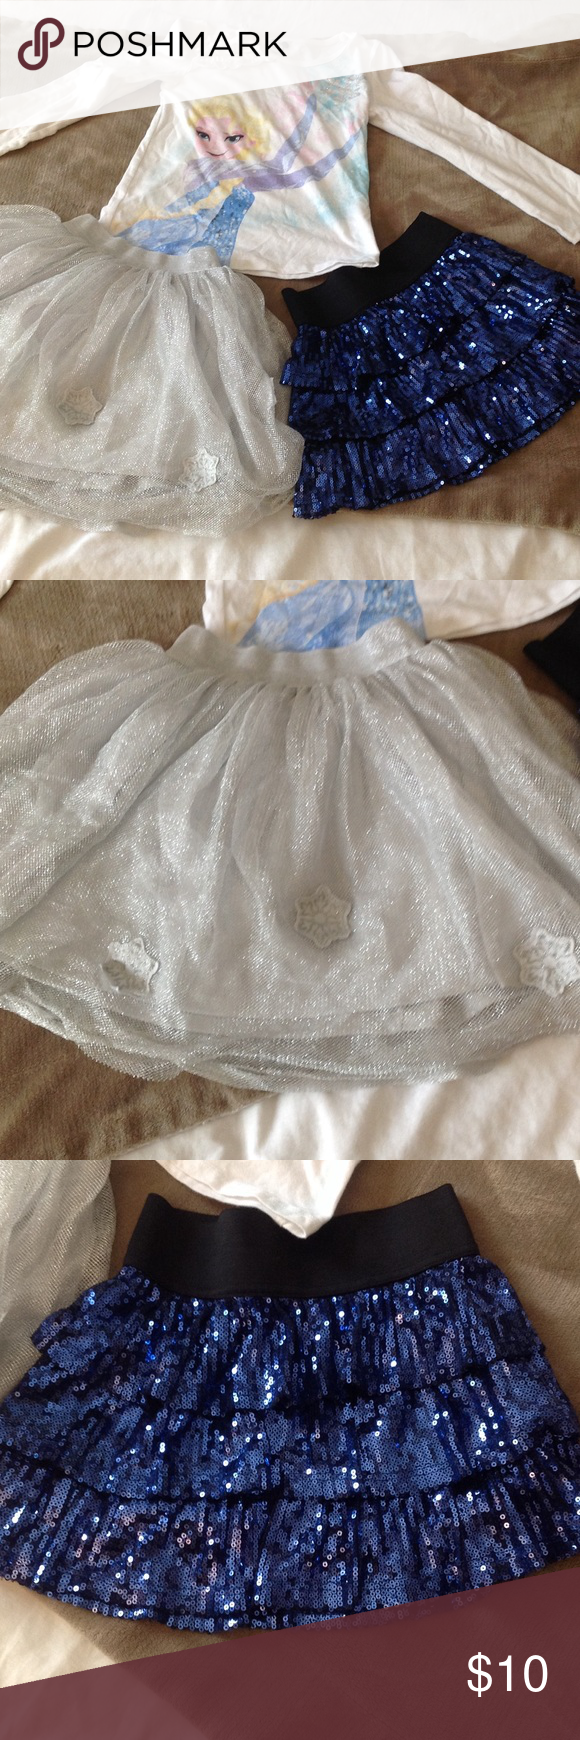 Skirt and top bundle ! Skirt size are 5 and 6, top is size 6. My girl used these lightly, her Frozen fever thawed out quickly! Bottoms Skirts